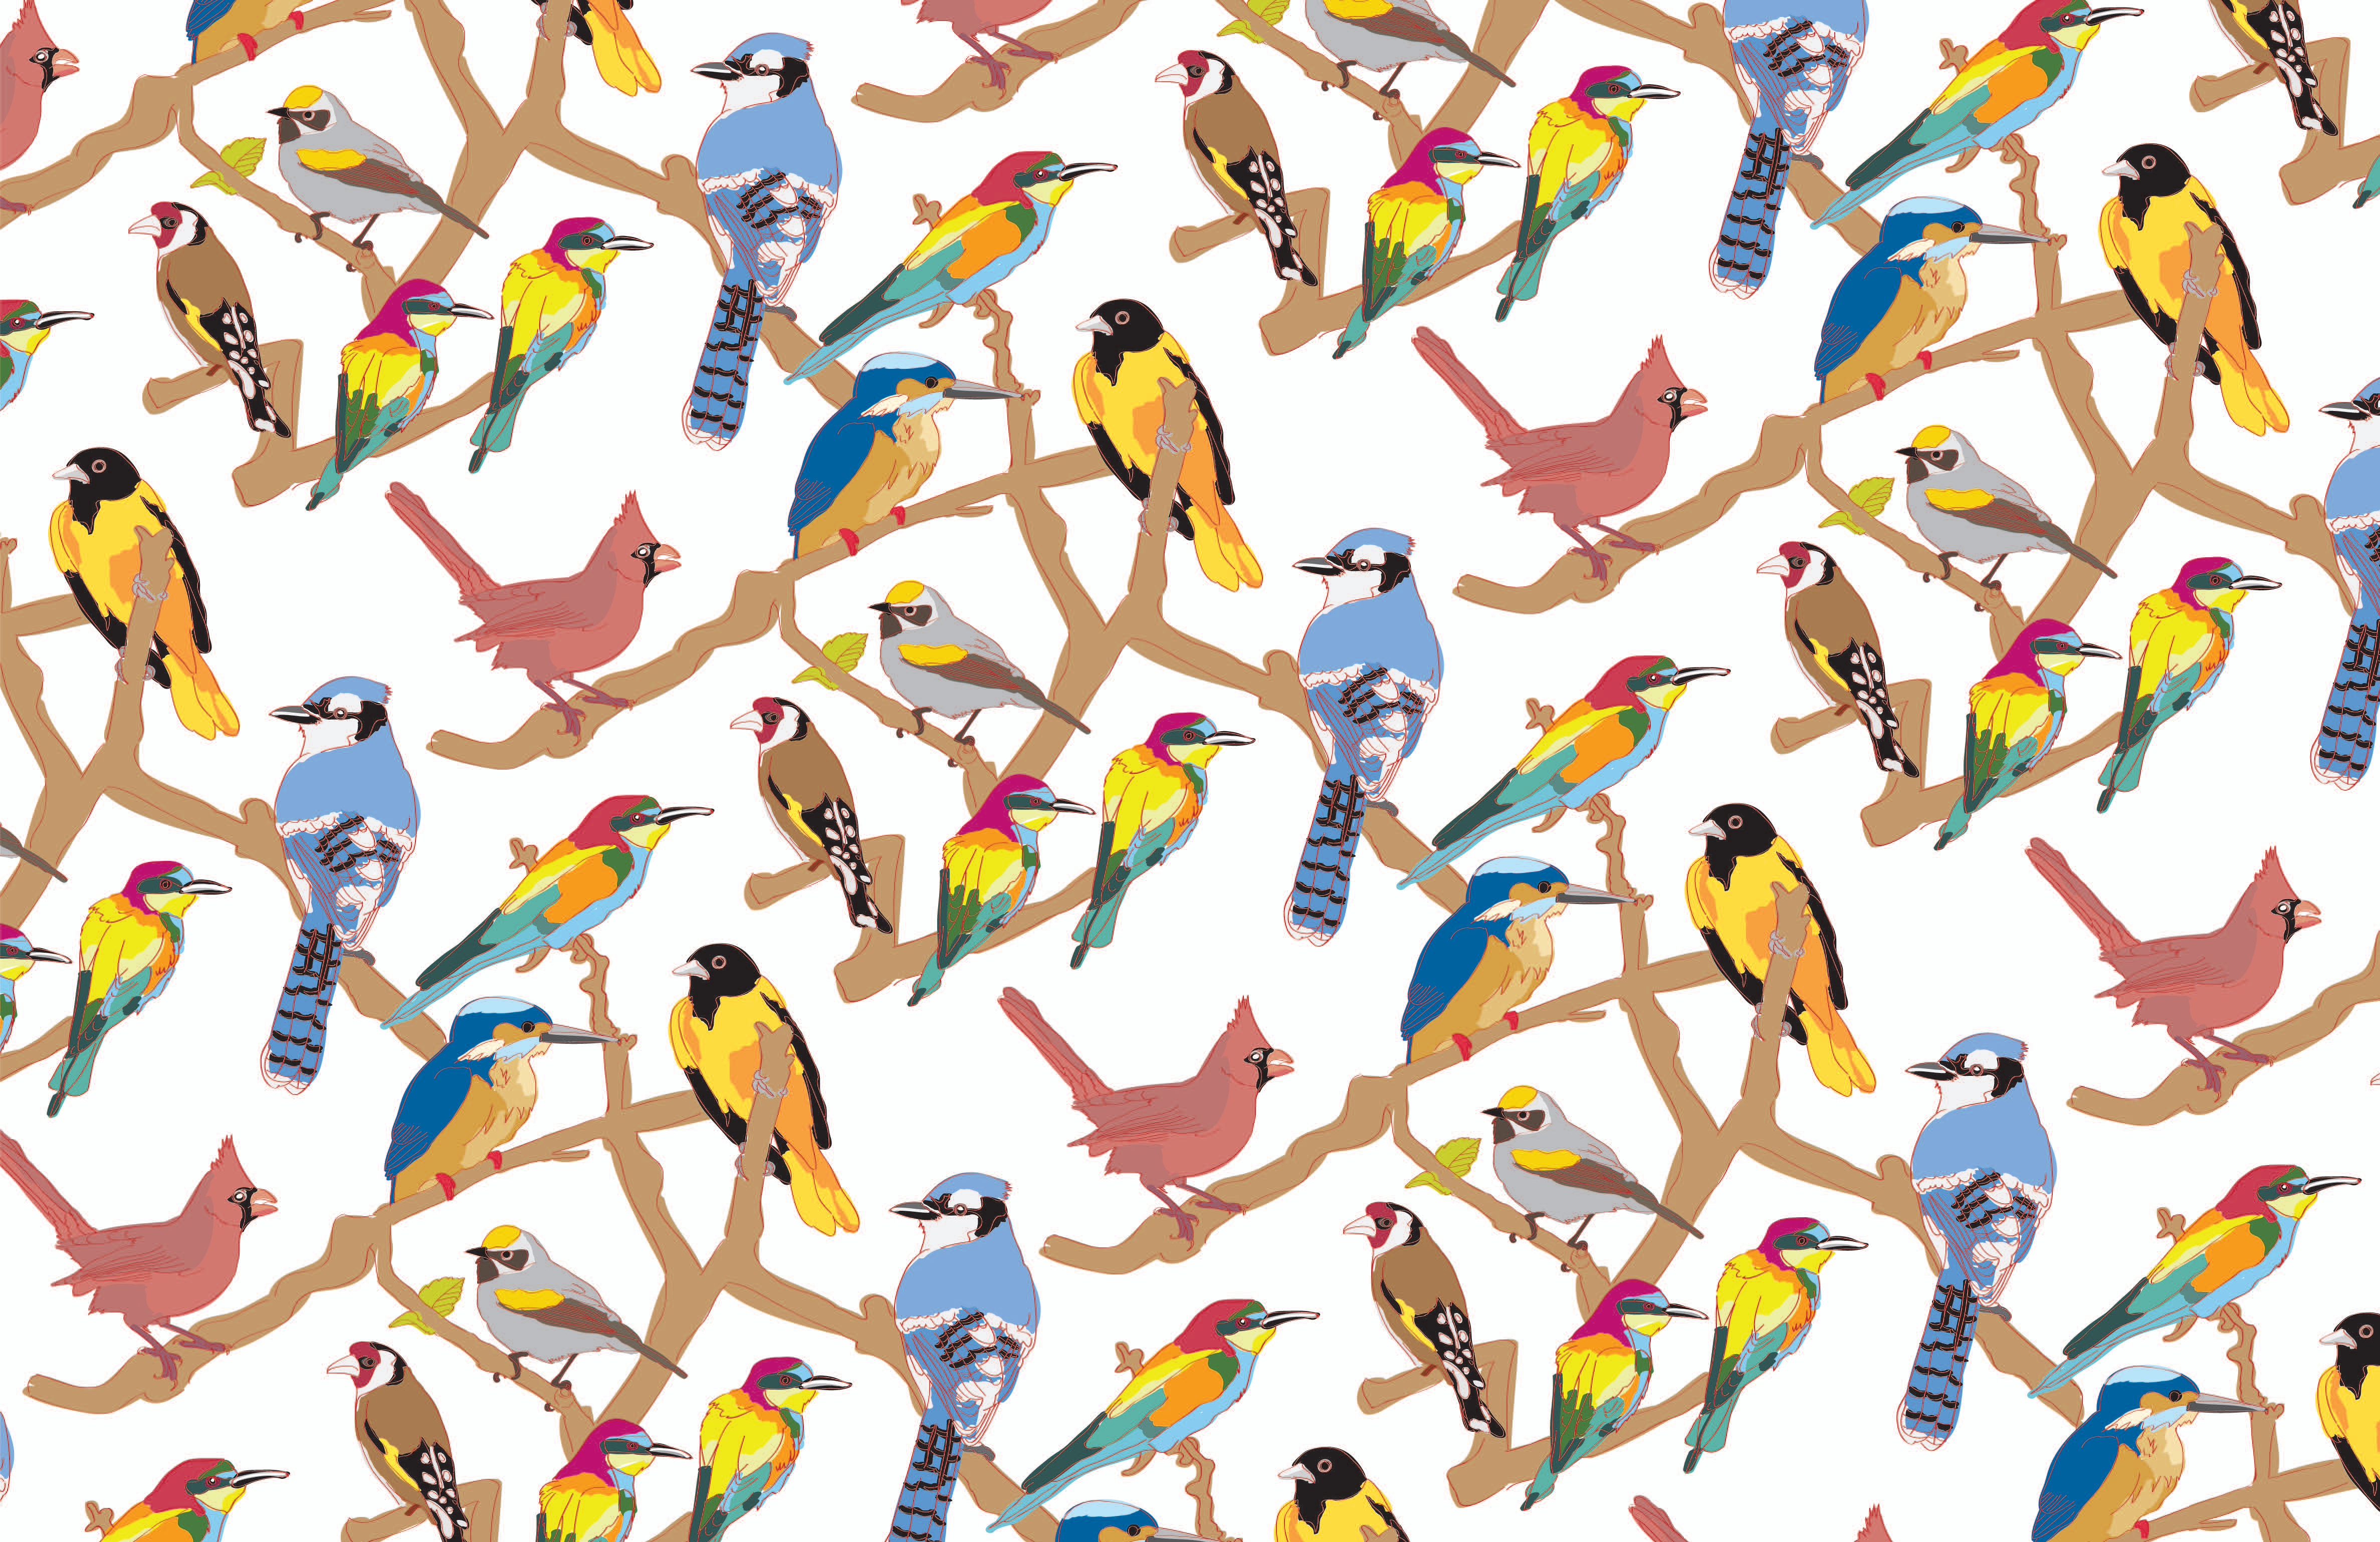 birds graphic design greeting cards illustration pattern surface 4749x3077